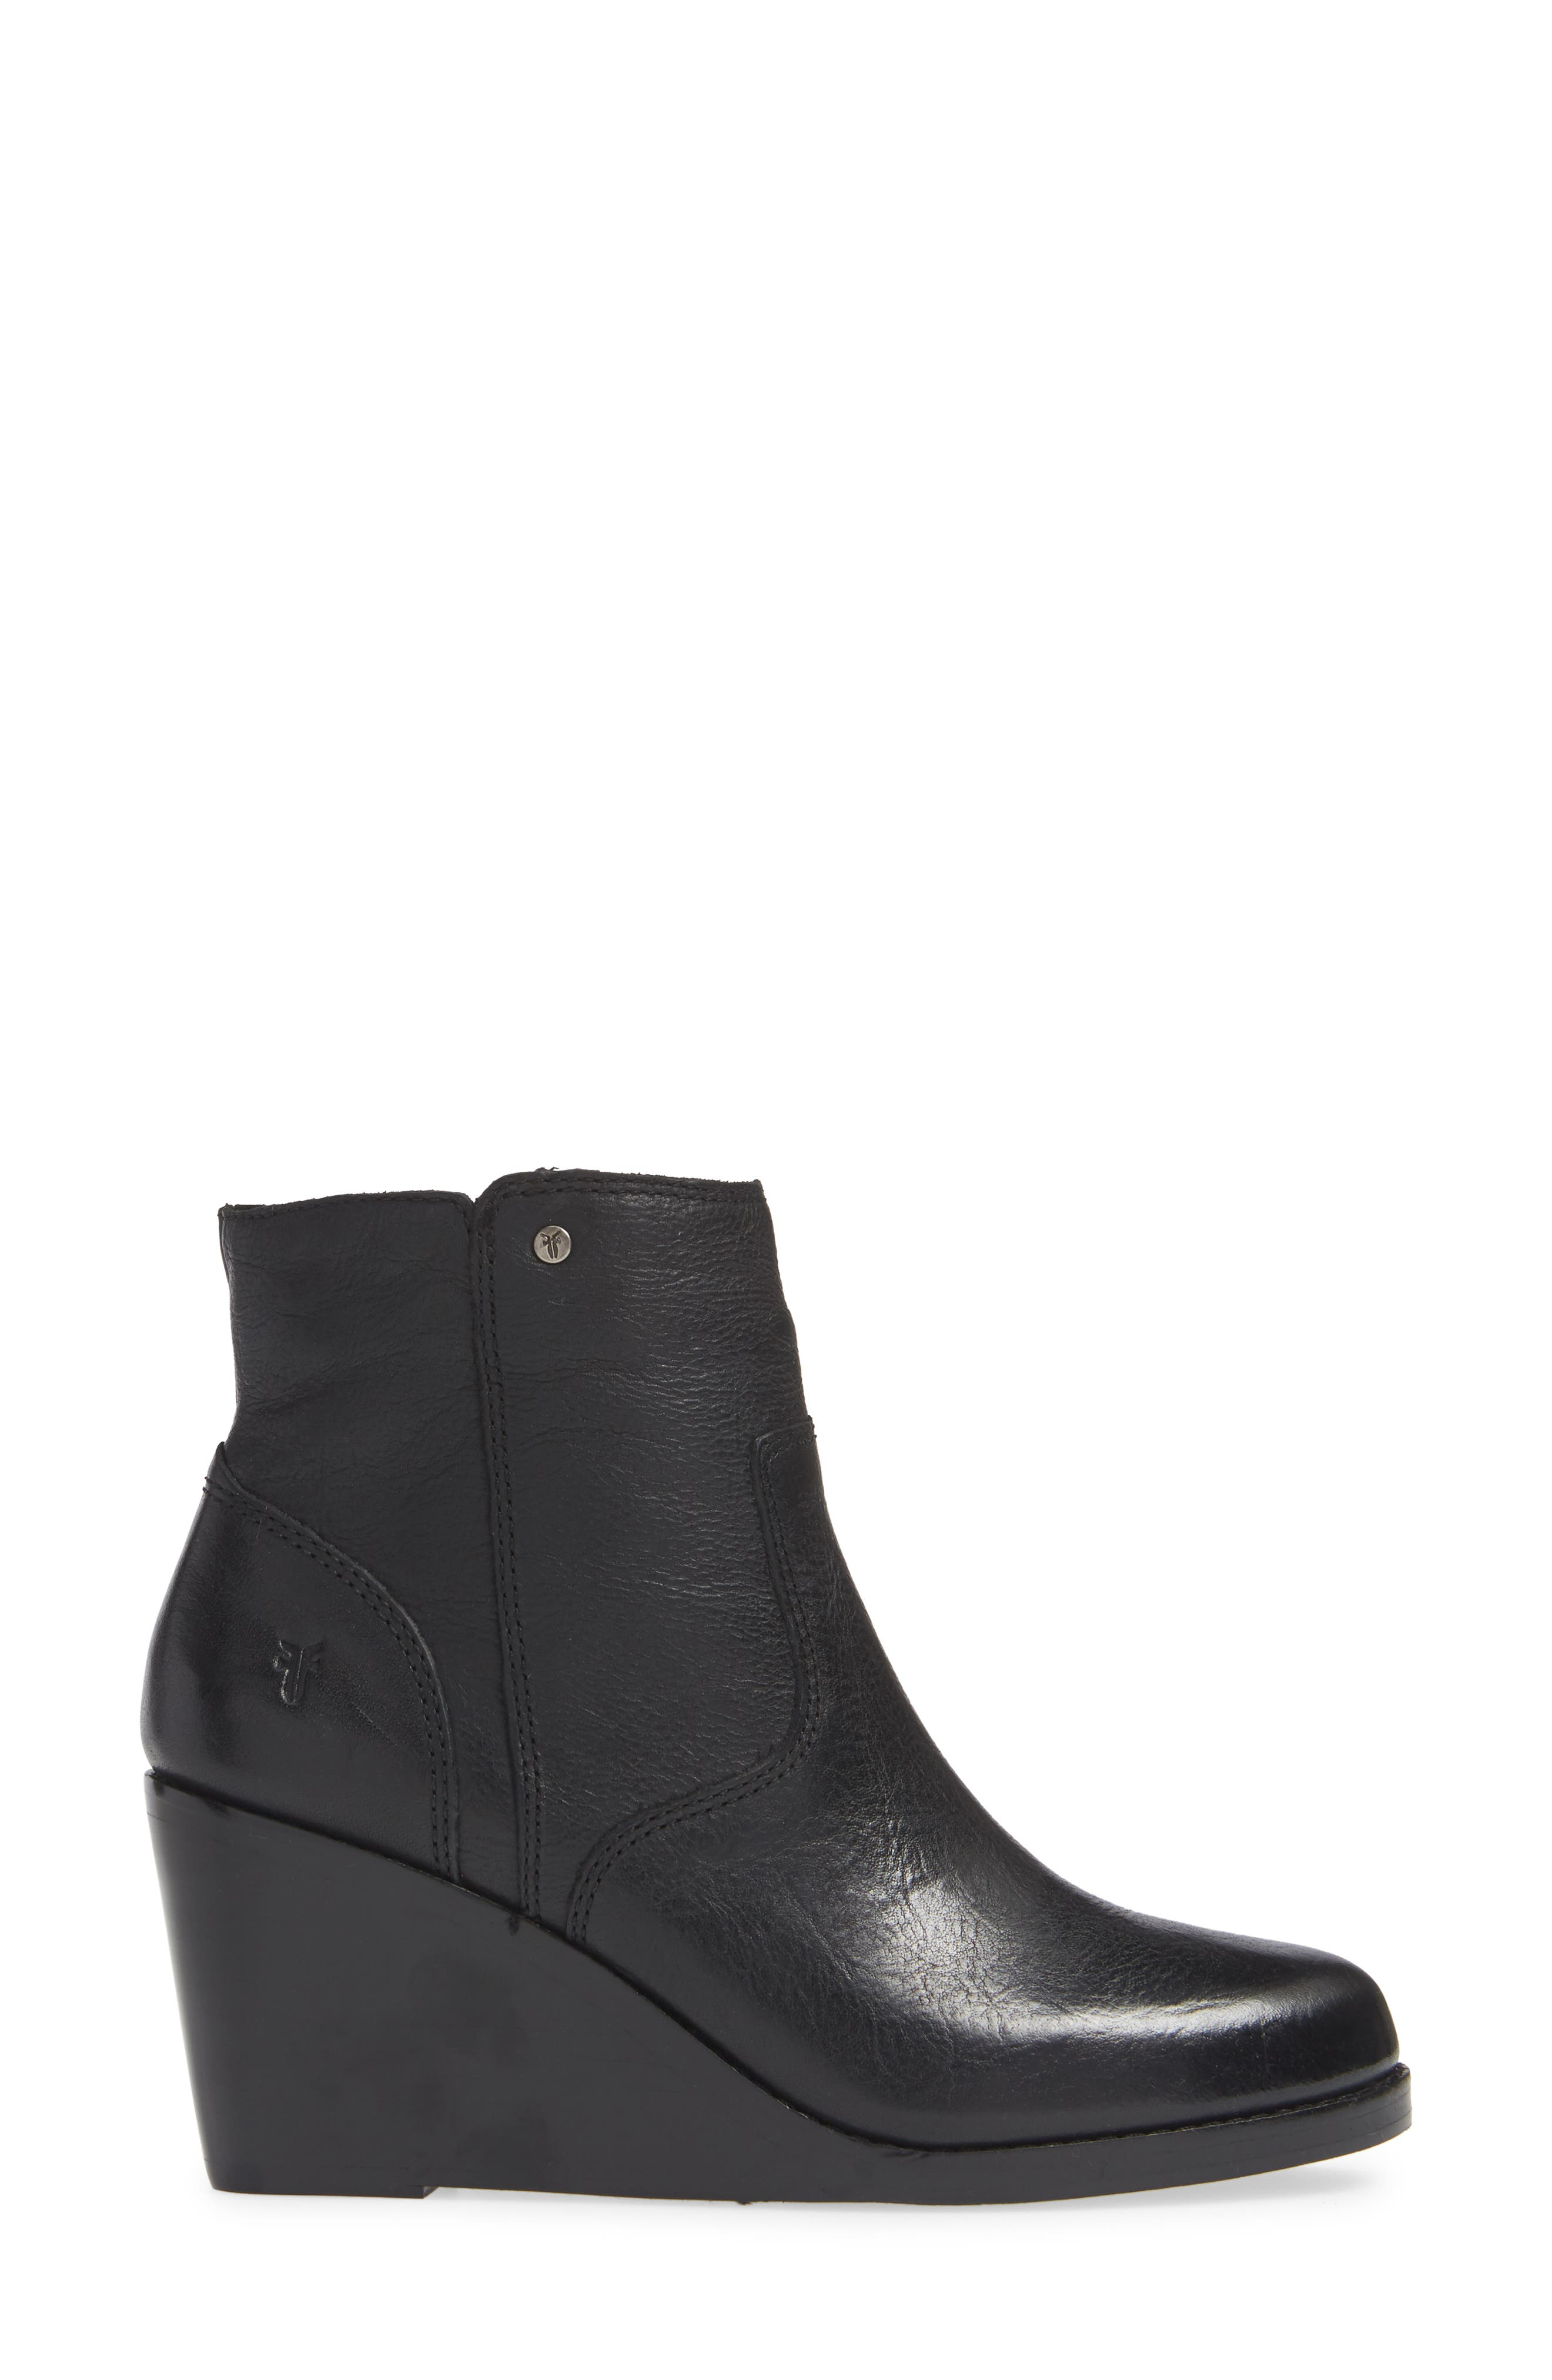 Emma Wedge Bootie,                             Alternate thumbnail 3, color,                             BLACK LEATHER